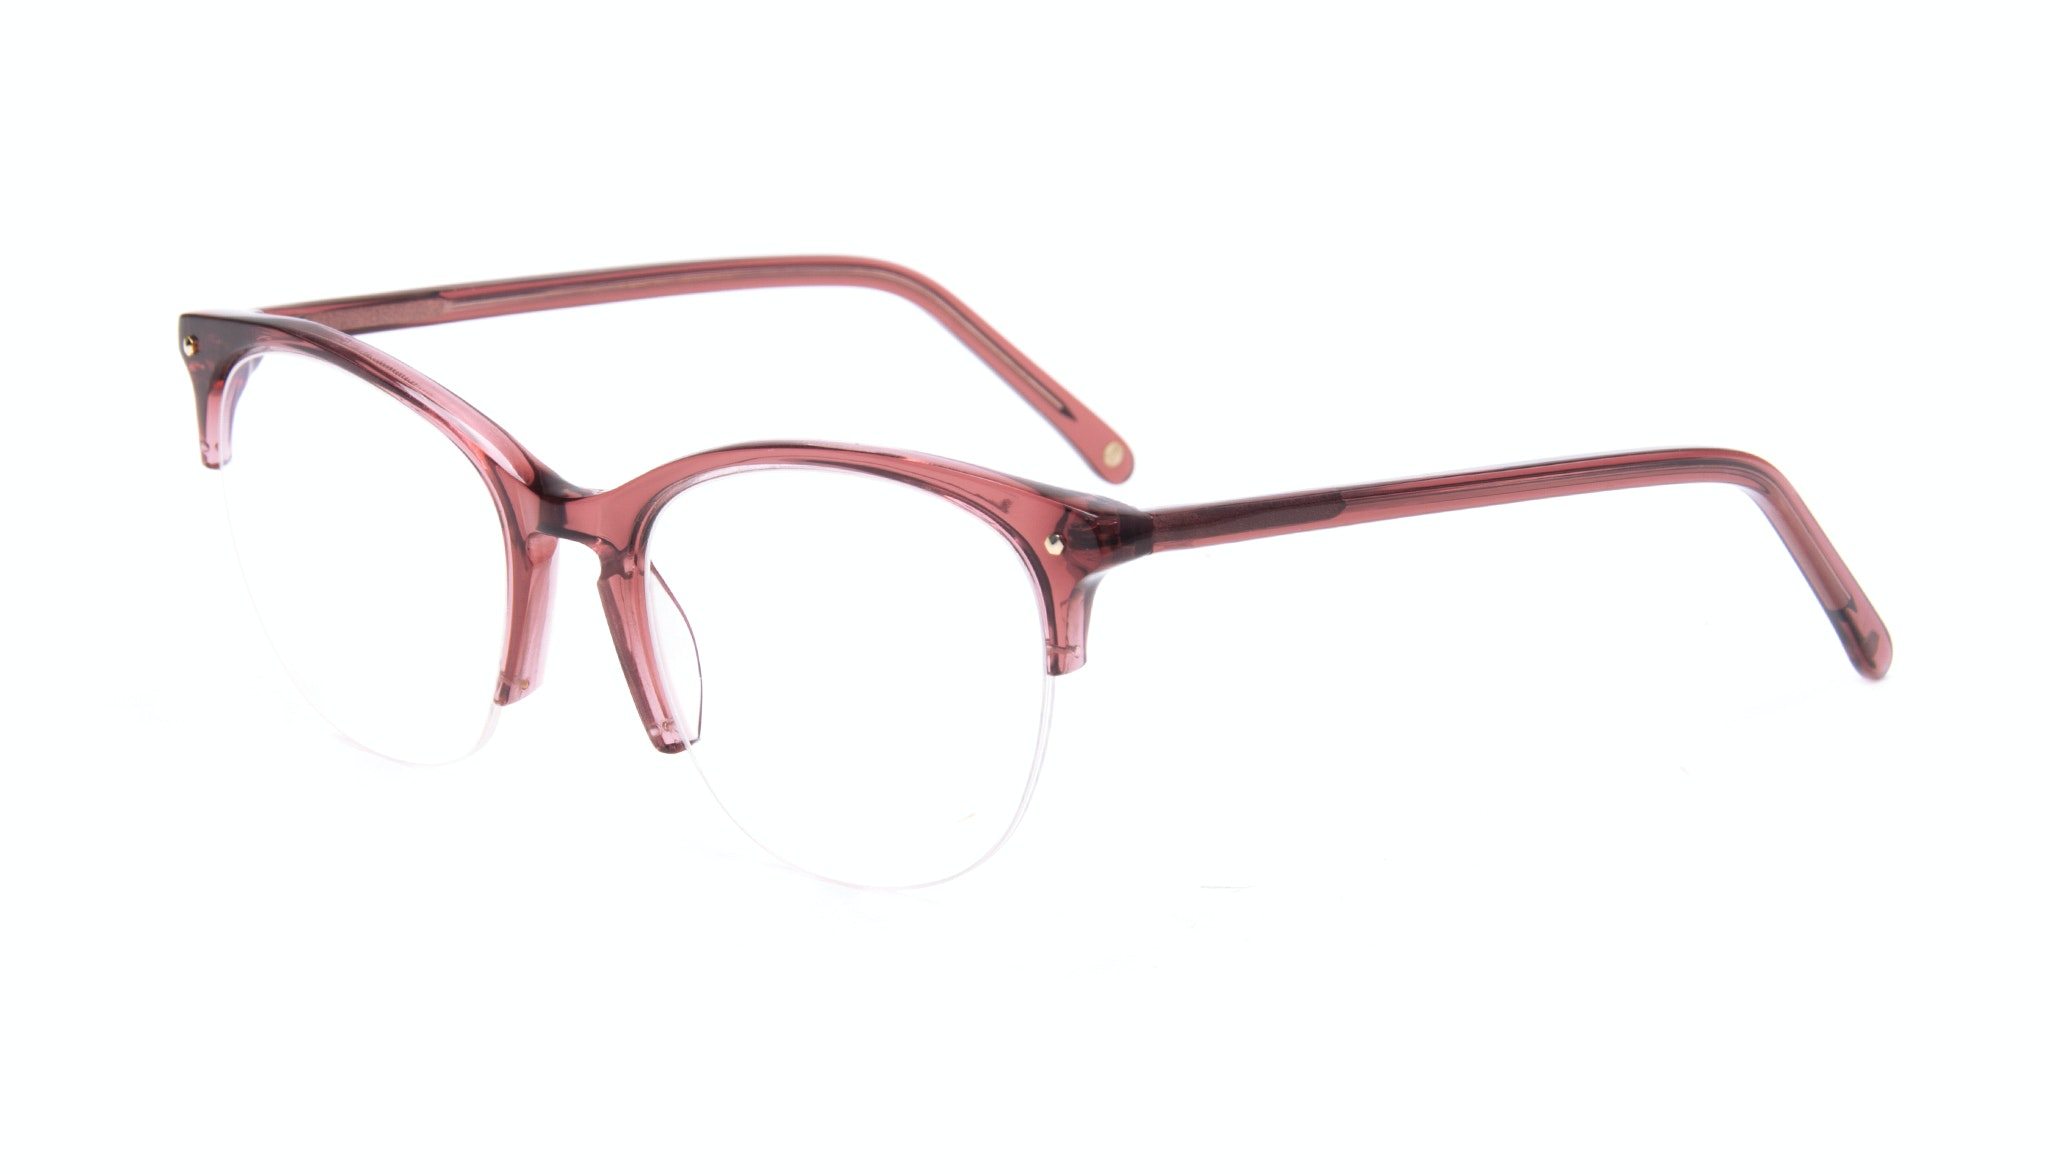 Affordable Fashion Glasses Rectangle Square Round Semi-Rimless Eyeglasses Women Nadine Light Winegum Tilt